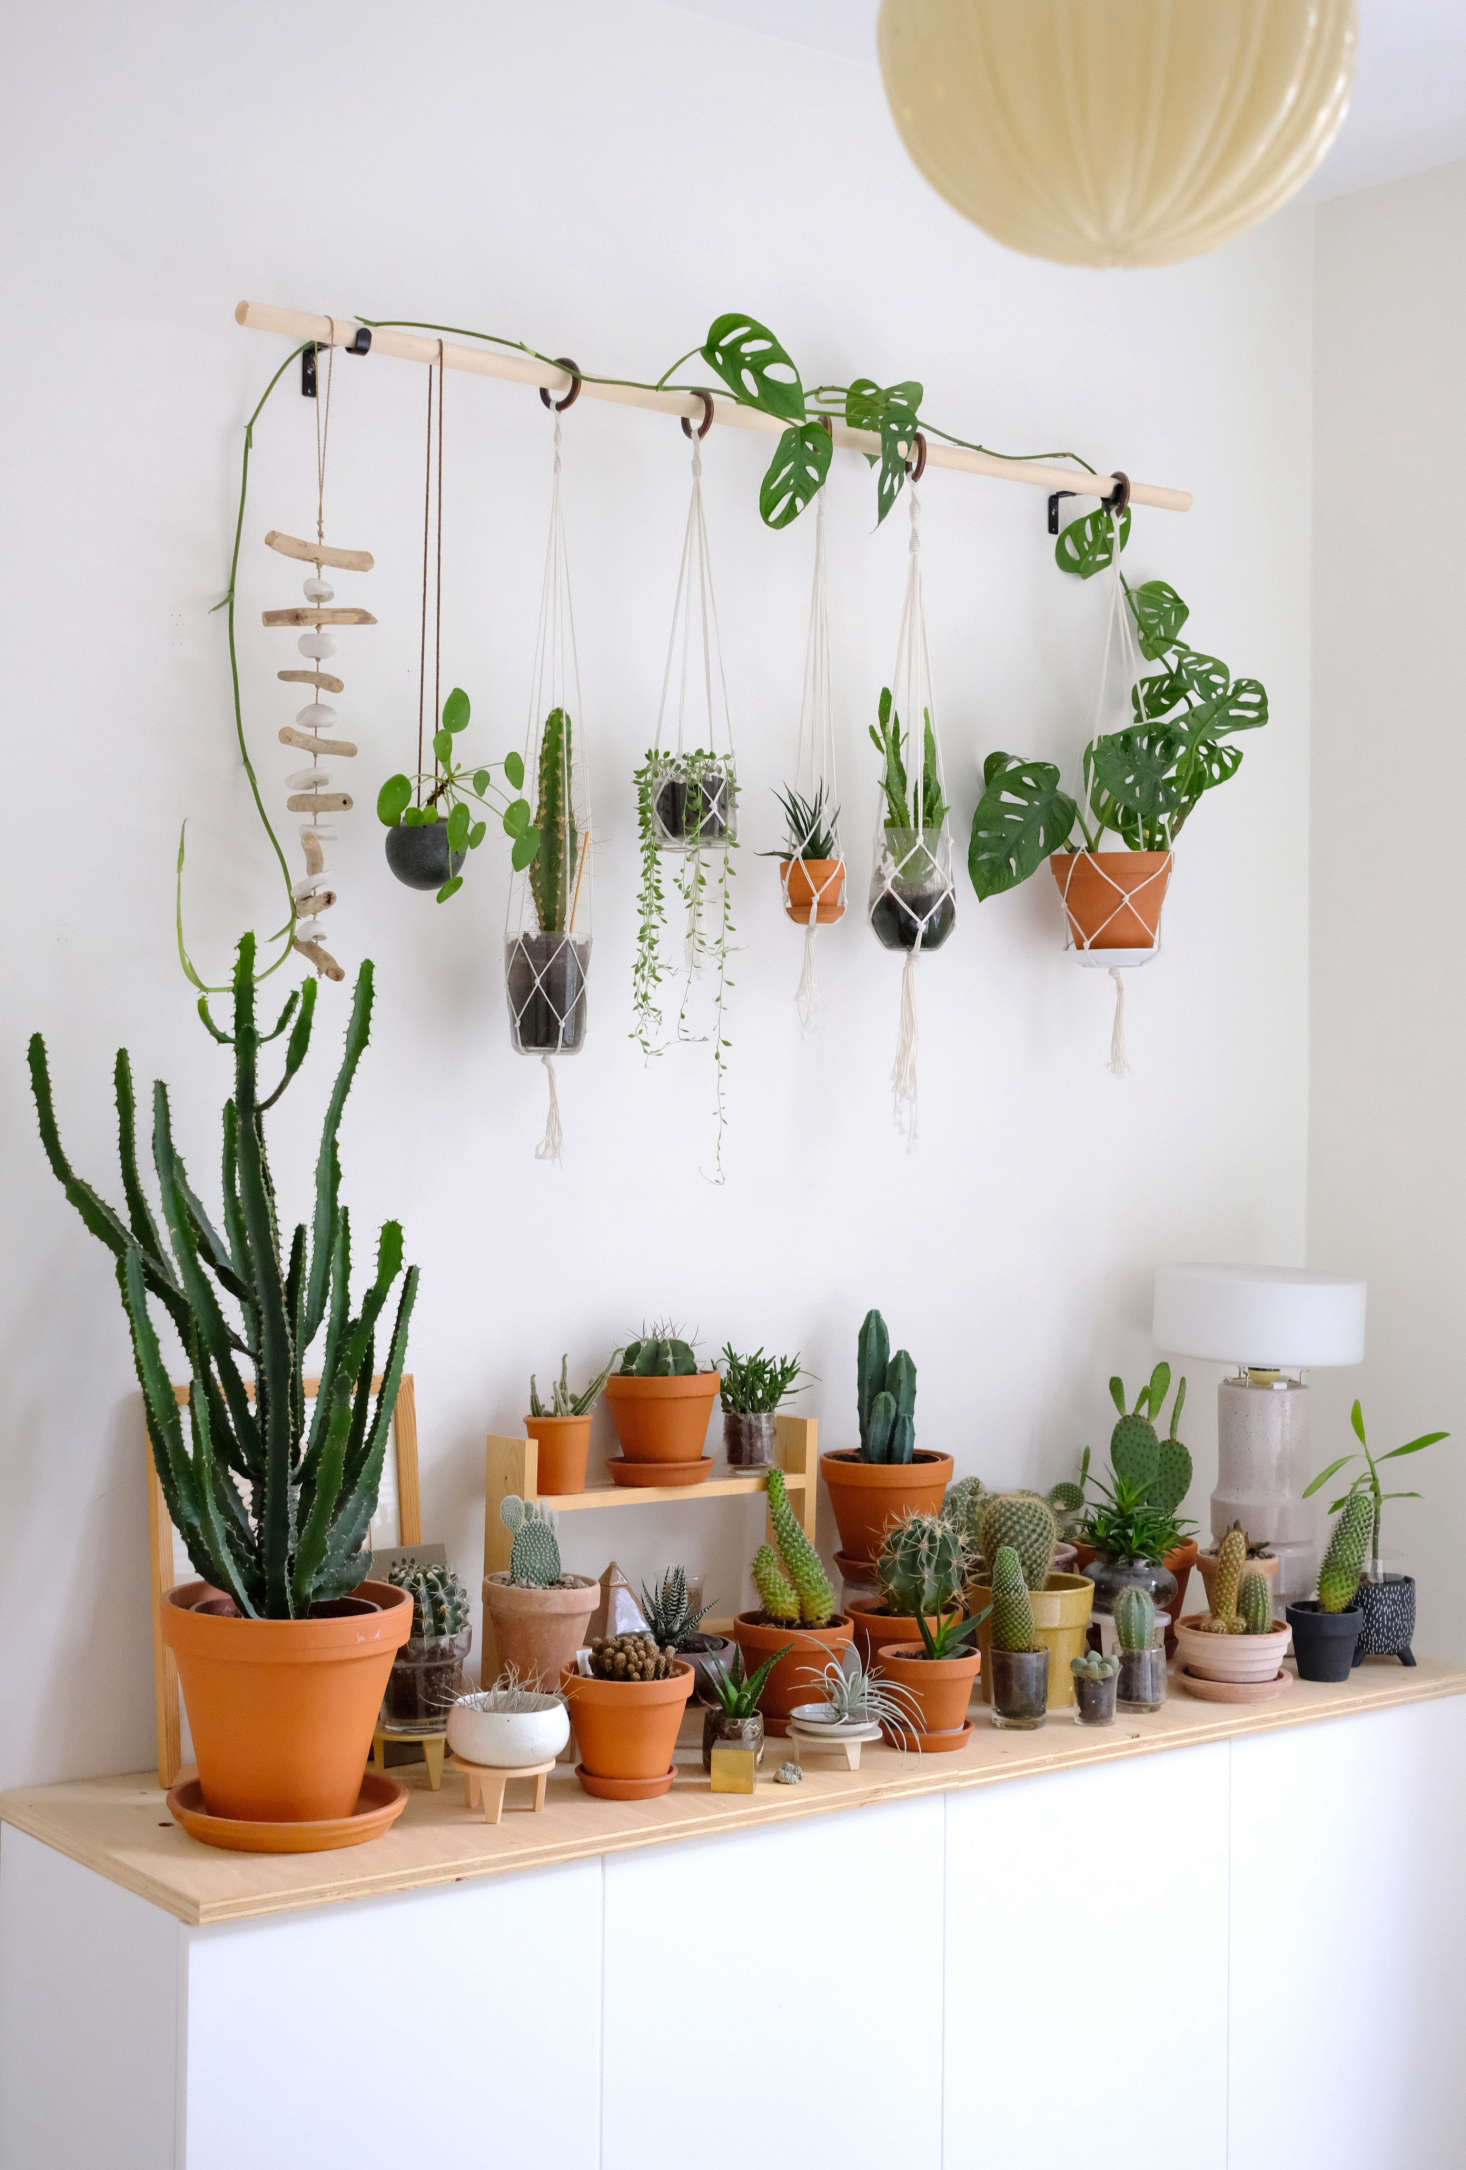 diy hanging plant wall with macrame planters. Black Bedroom Furniture Sets. Home Design Ideas